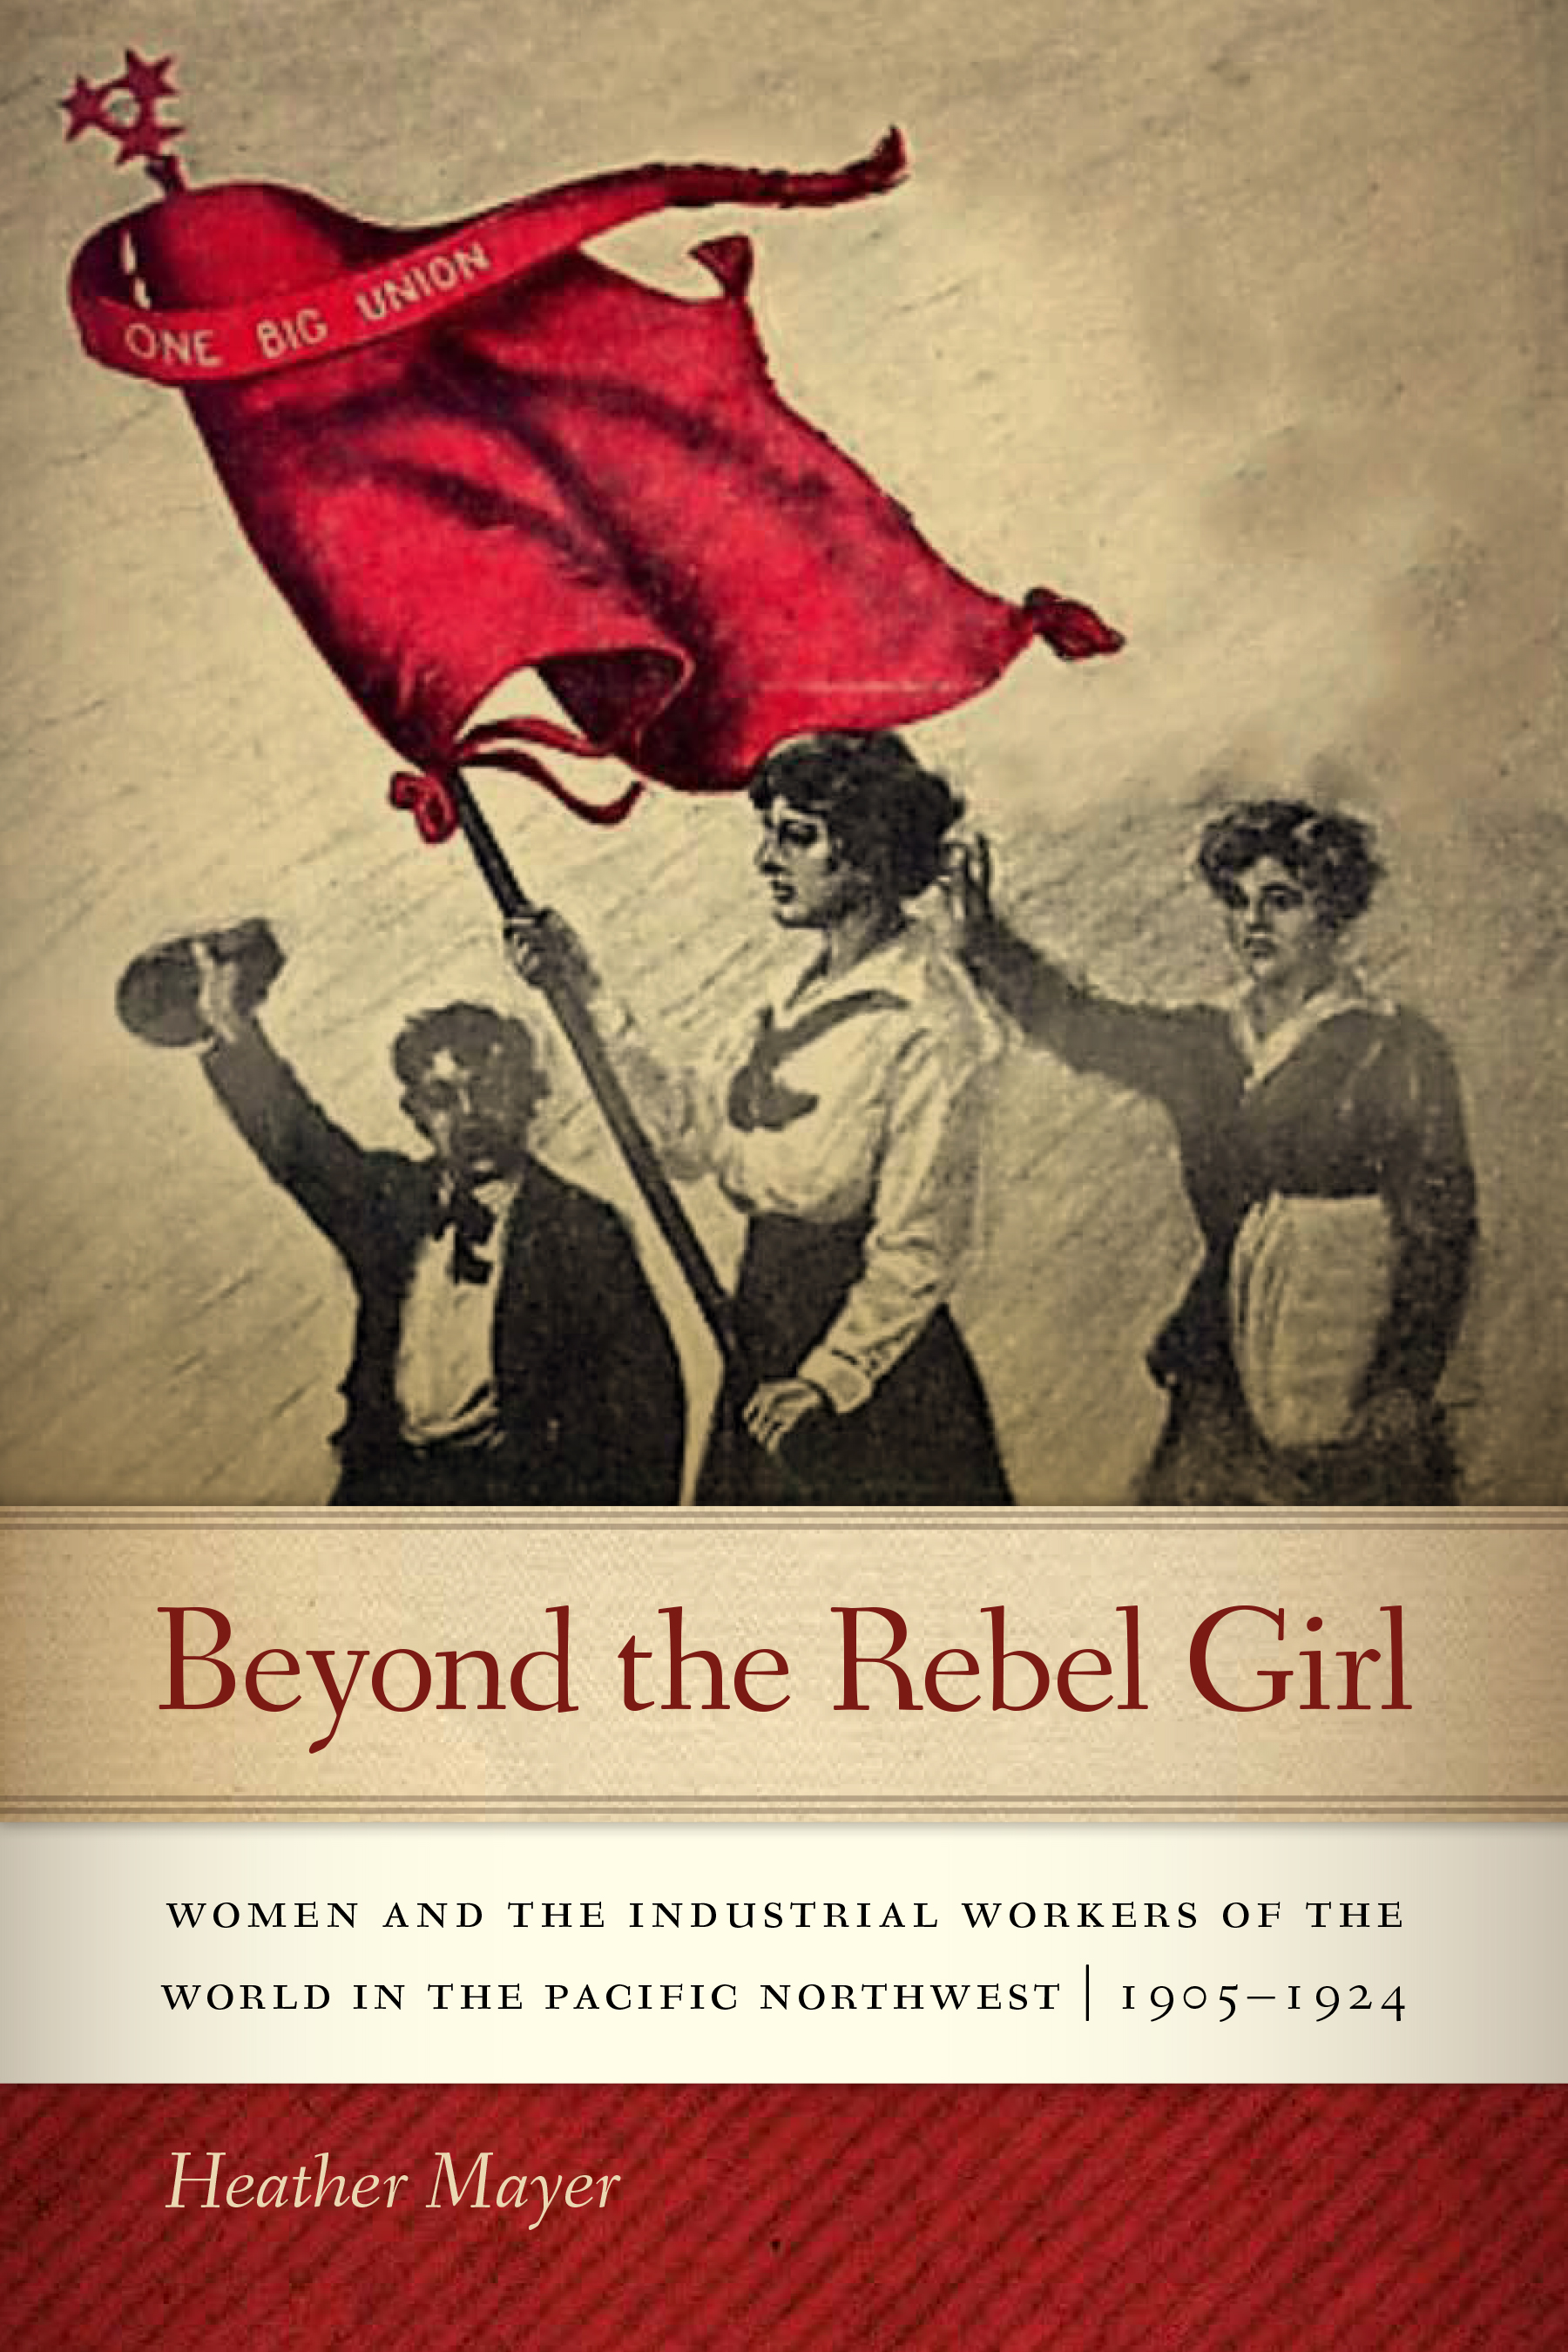 Beyond the Rebel Girl